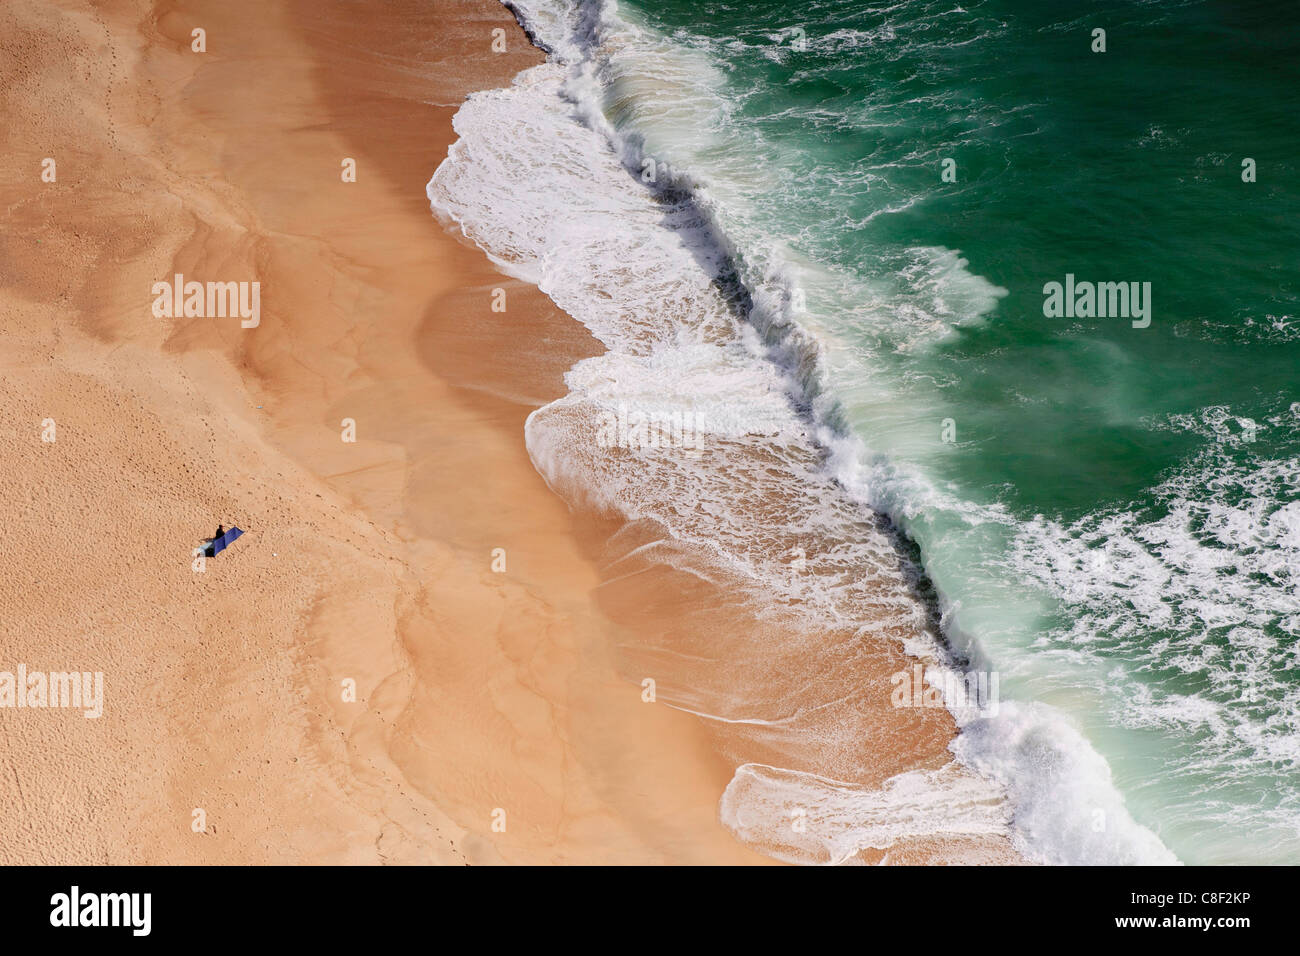 Nazaré beach, a solitary sunbather watches large waves crash onto the shore, from above at Sitio - Stock Image